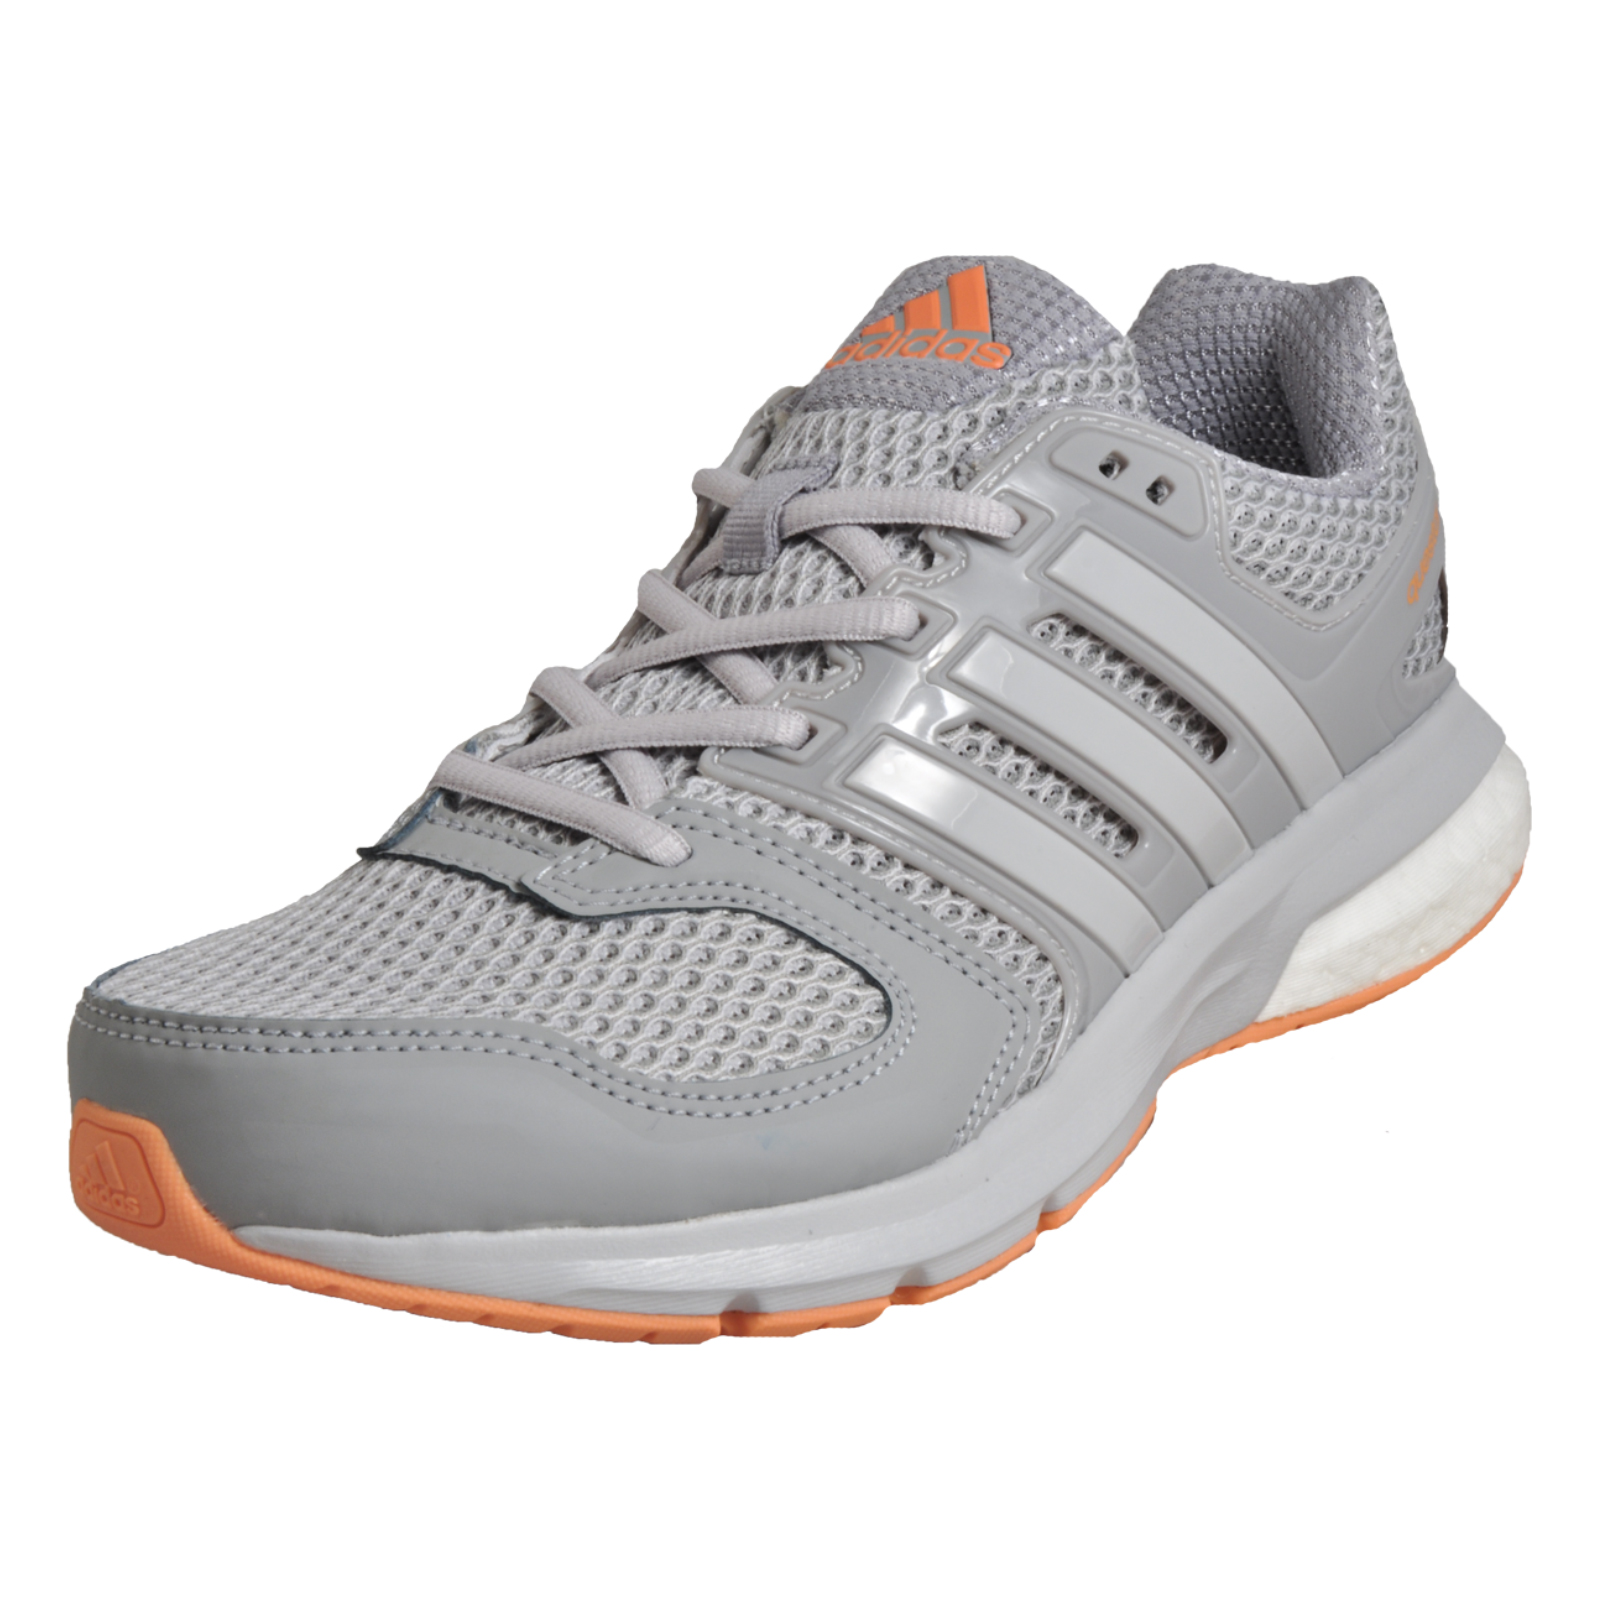 cheap for discount 013e7 d8858 Details about Adidas Questar Boost Women s Premium Running Shoes Fitness  Gym Trainers Grey